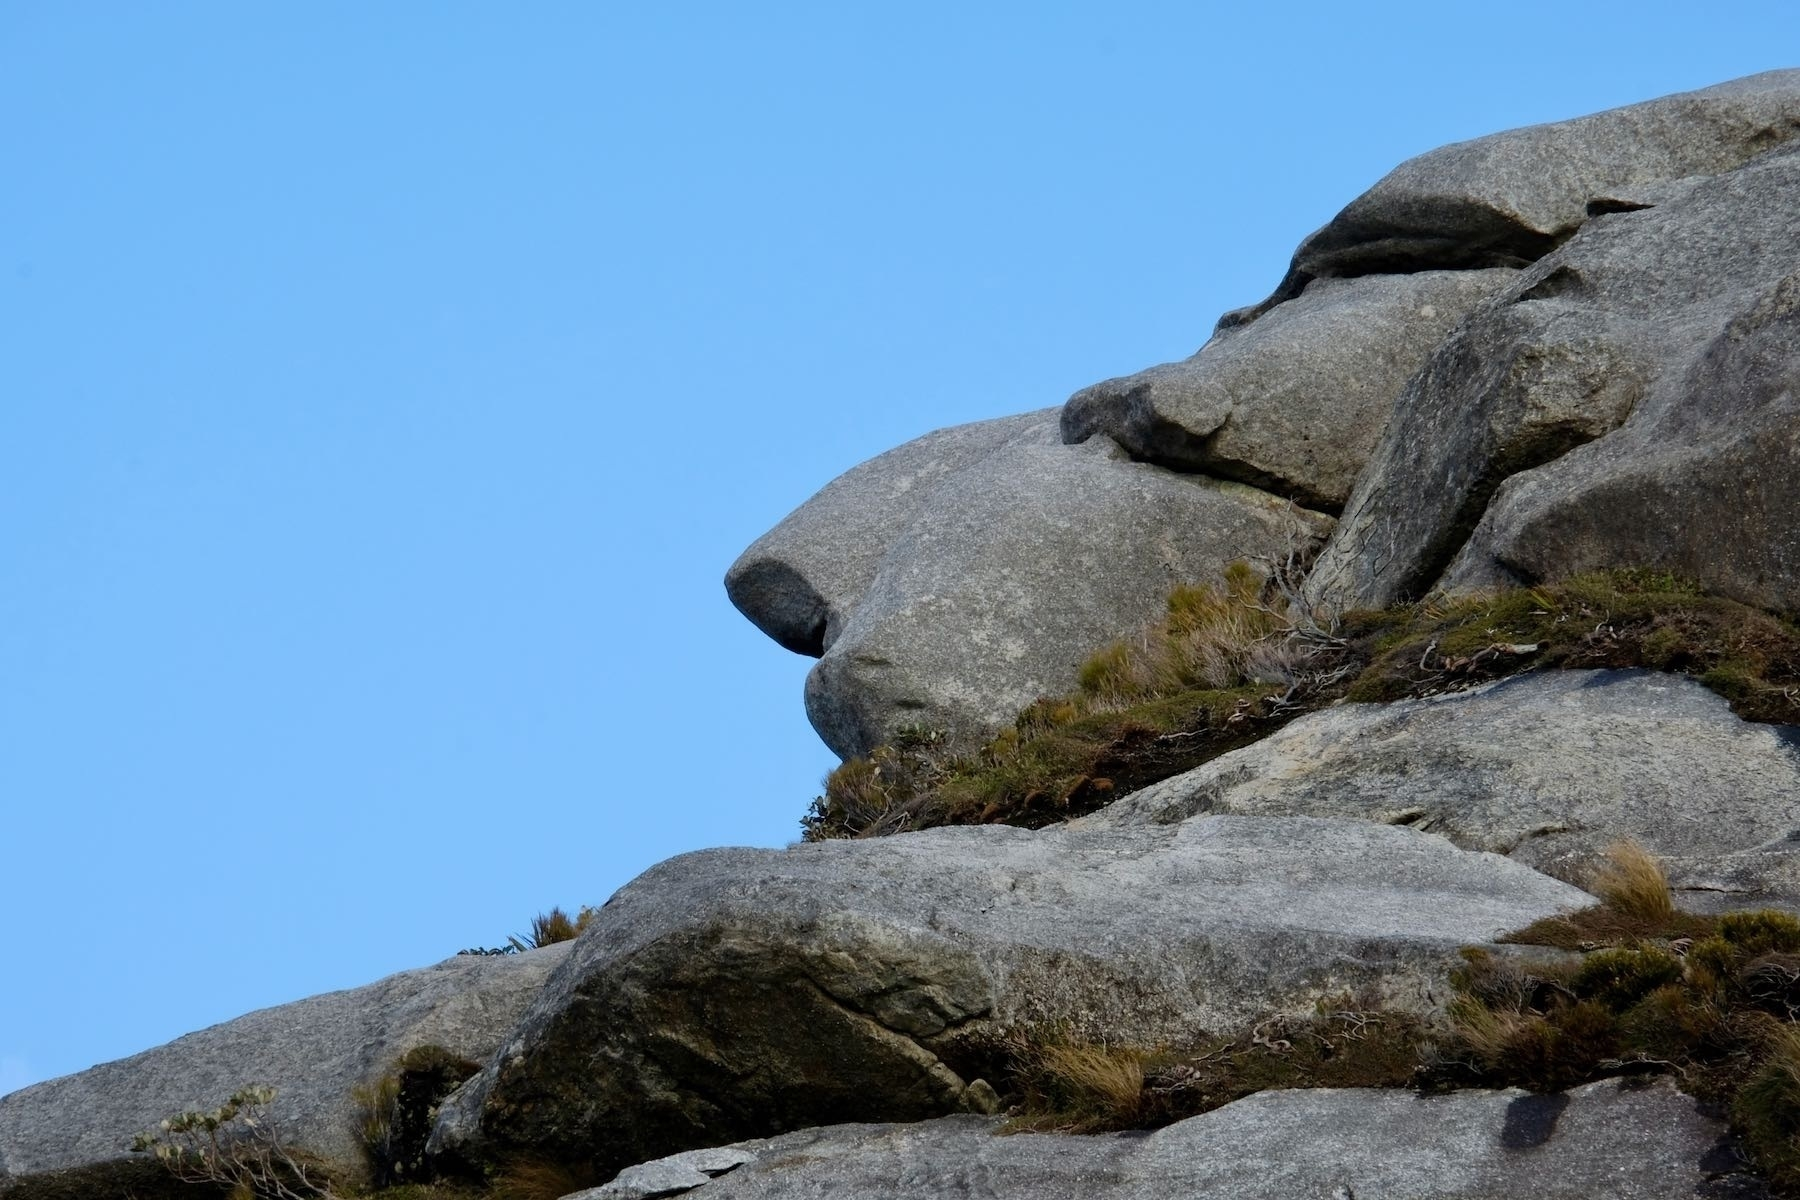 Rock outcrop that resembles a face in profile.